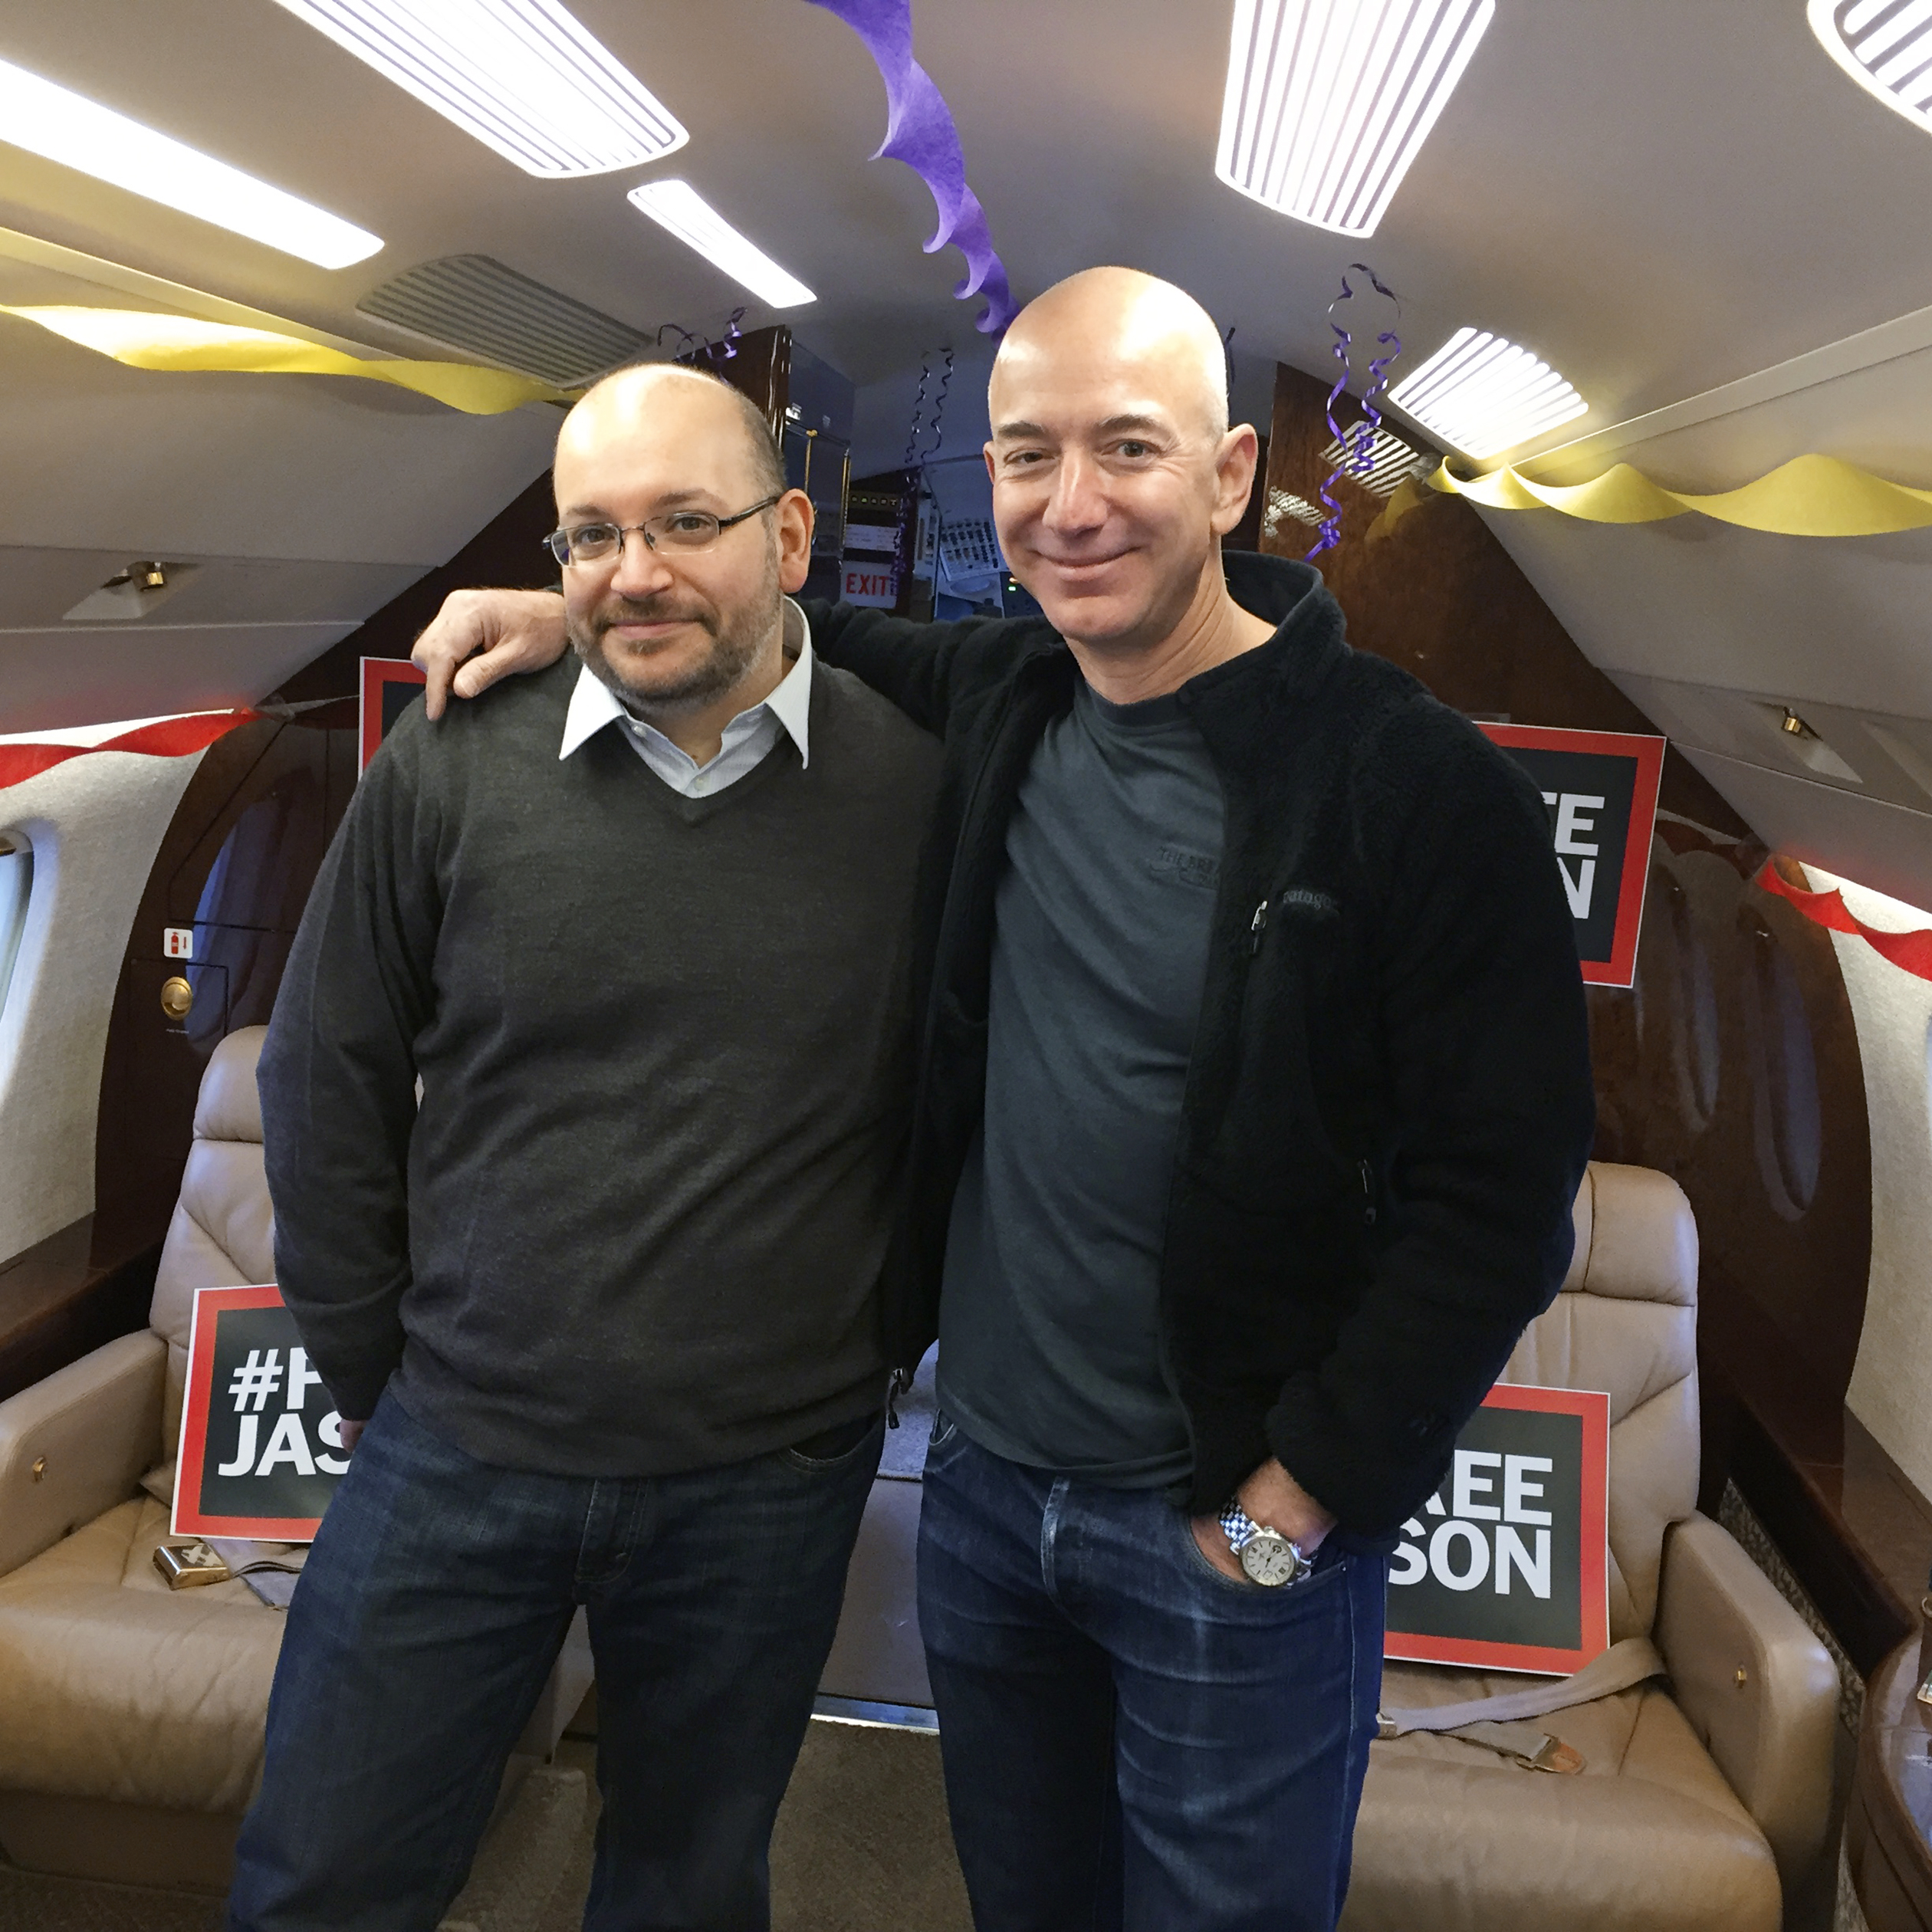 Reporter Jason Rezaian (left) and Washington Post owner Jeff Bezos aboard a private aircraft before it took off for the U.S. on Jan. 22.